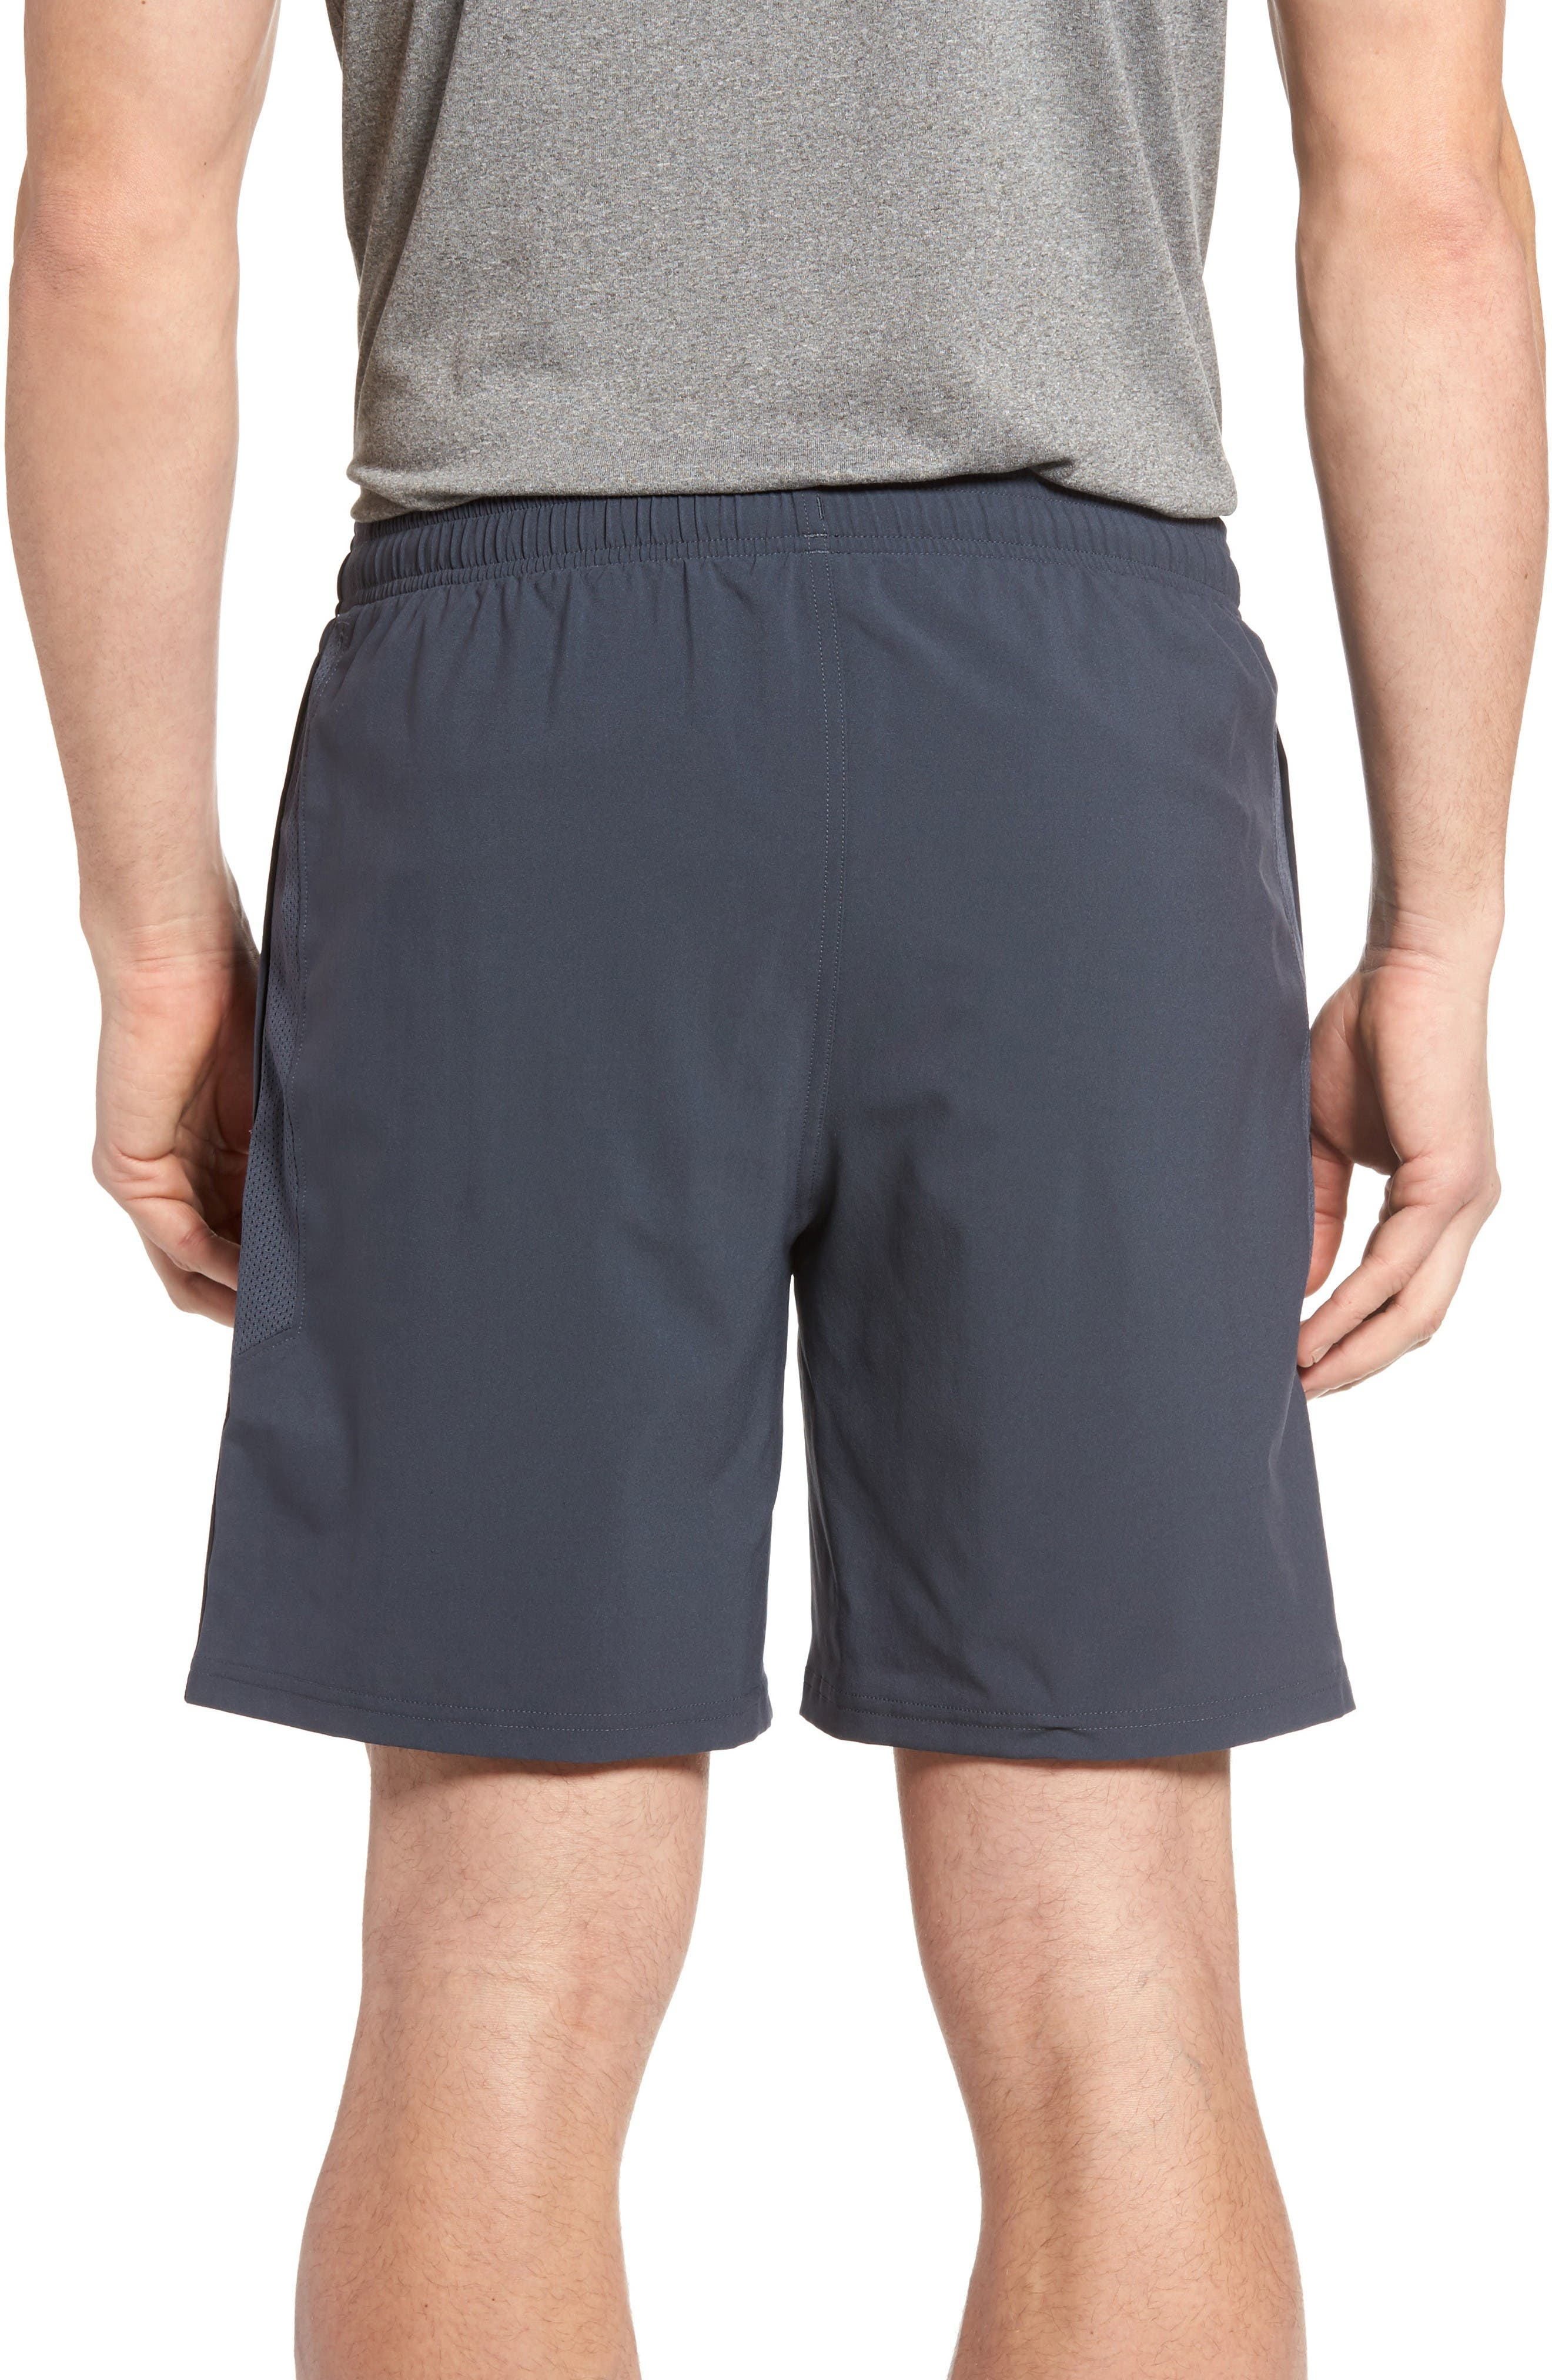 Launch Running Shorts,                             Alternate thumbnail 2, color,                             Stealth Gray